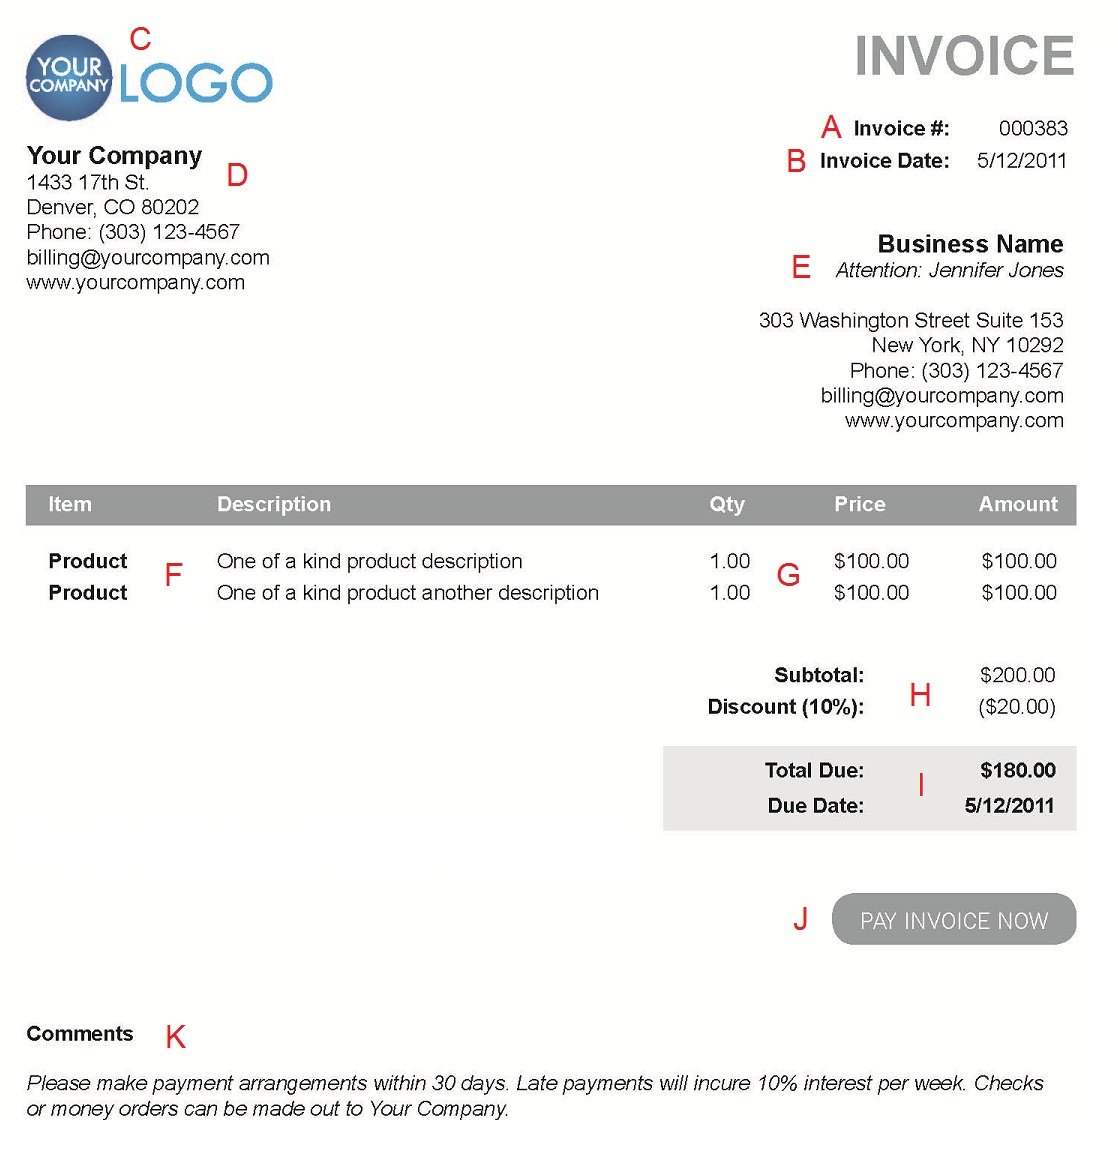 Centralasianshepherdus  Surprising The  Different Sections Of An Electronic Payment Invoice With Licious A  With Astounding Invoice Template Australia Also Commision Invoice In Addition Invoicing Software For Ipad And Where To Find Car Invoice Price As Well As Commercial Invoice Customs Additionally Invoices For Ipad From Paysimplecom With Centralasianshepherdus  Licious The  Different Sections Of An Electronic Payment Invoice With Astounding A  And Surprising Invoice Template Australia Also Commision Invoice In Addition Invoicing Software For Ipad From Paysimplecom